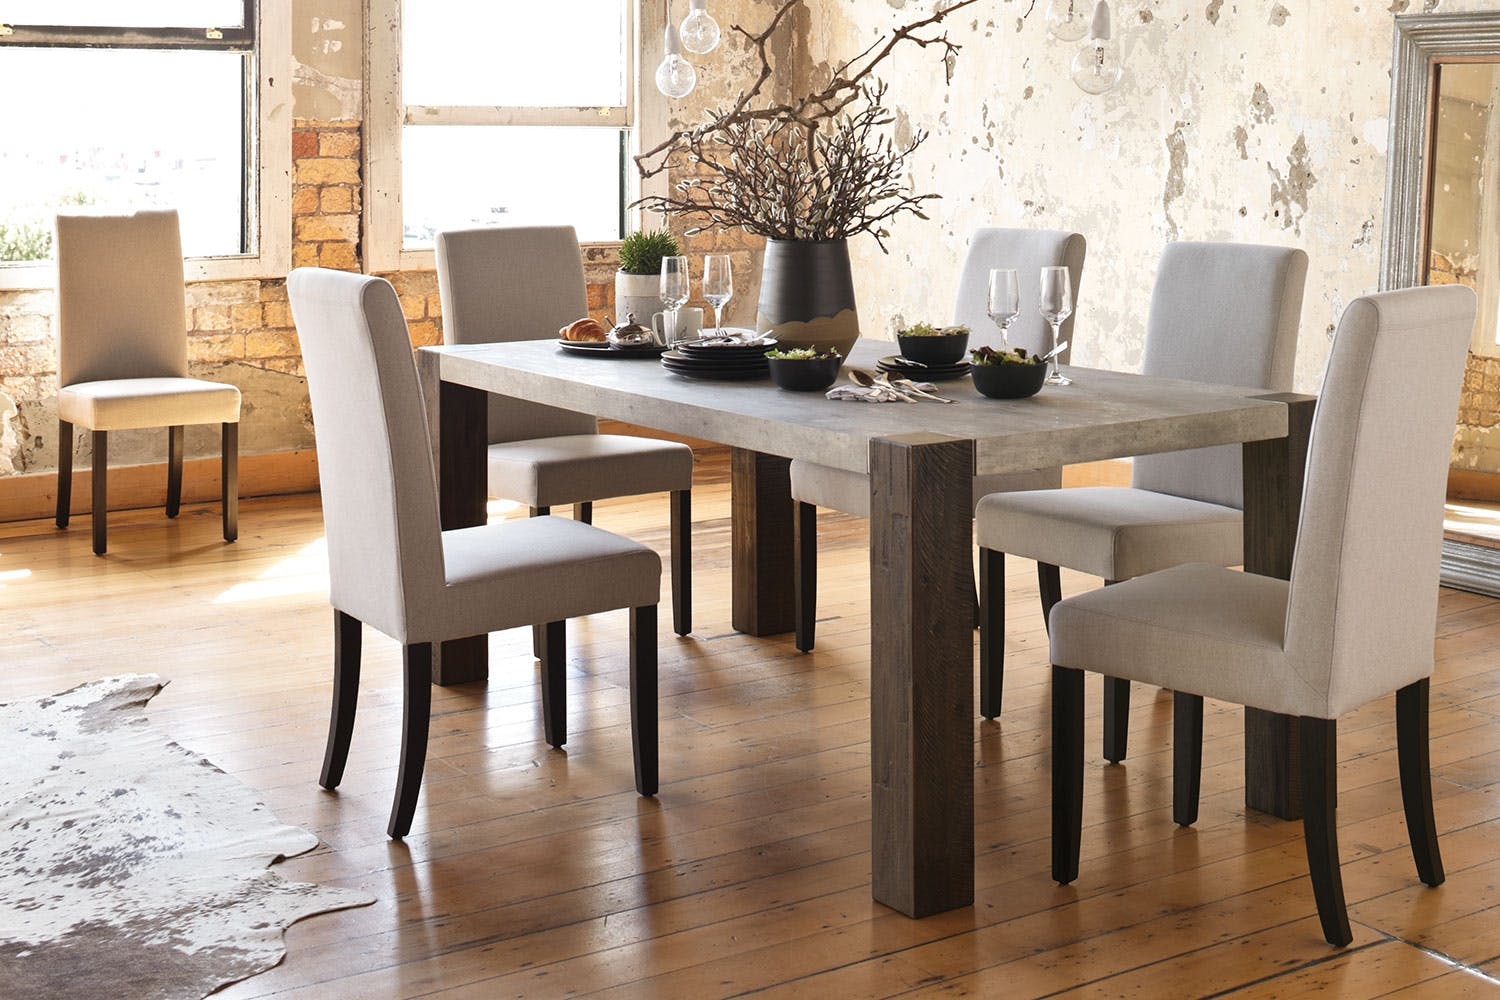 We produce high-quality dining furniture from premium materials